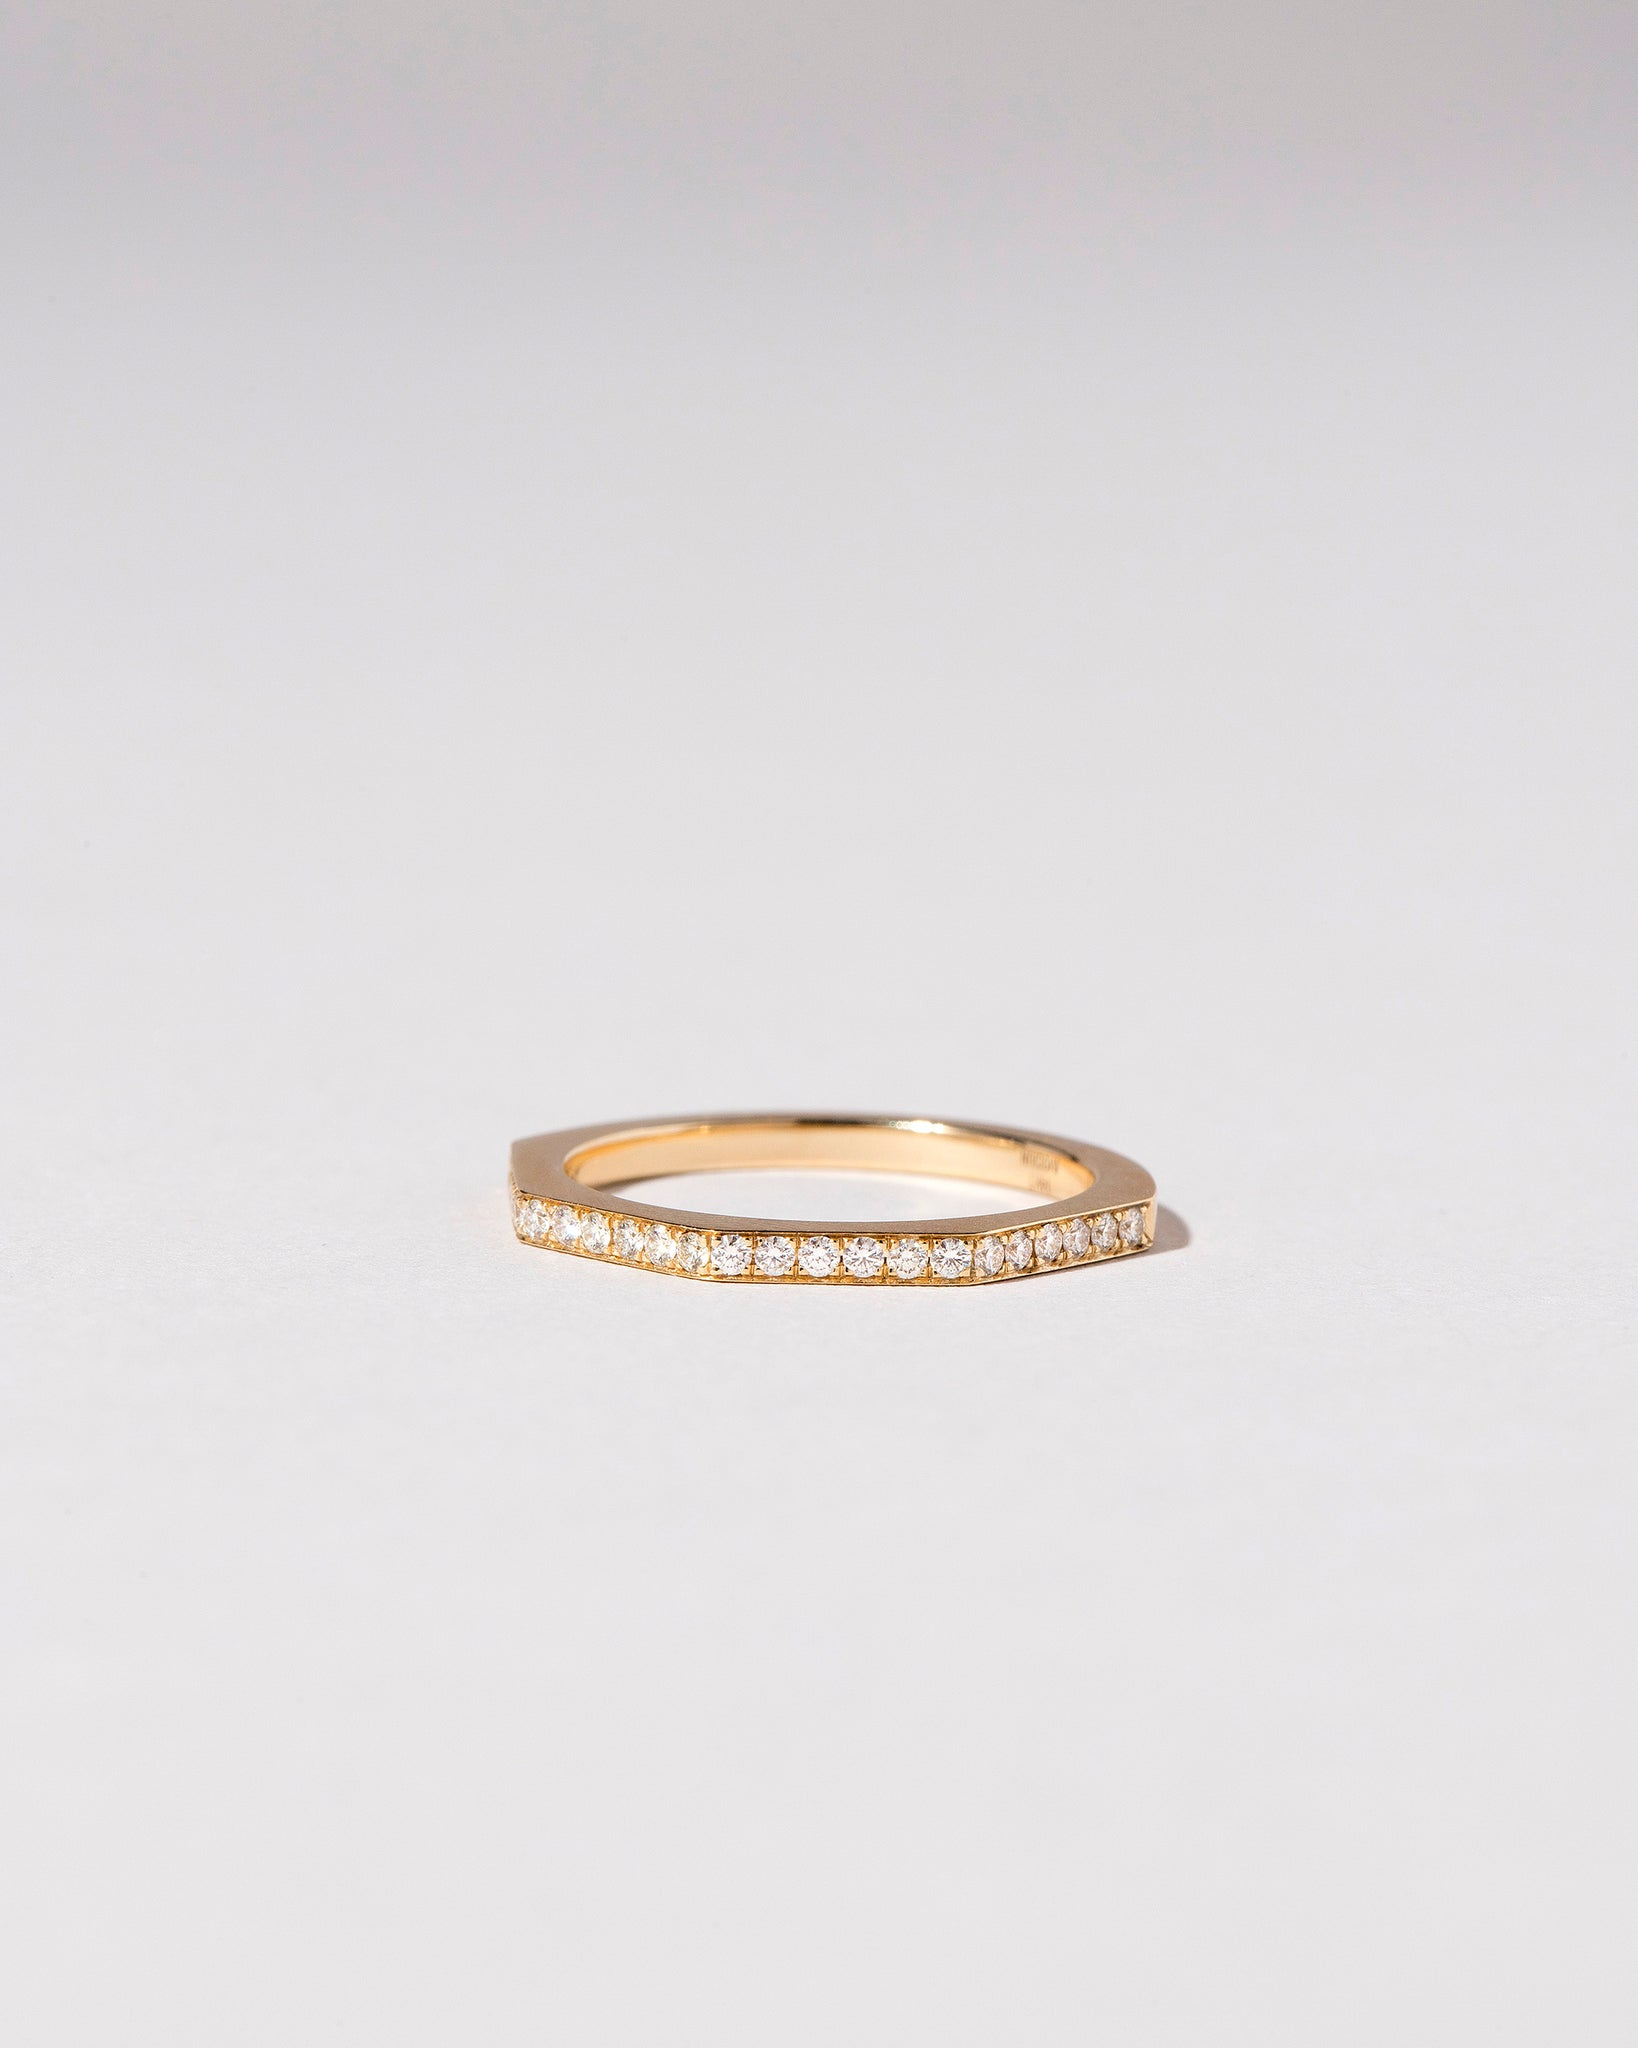 Segmented Eternity Pavé Band